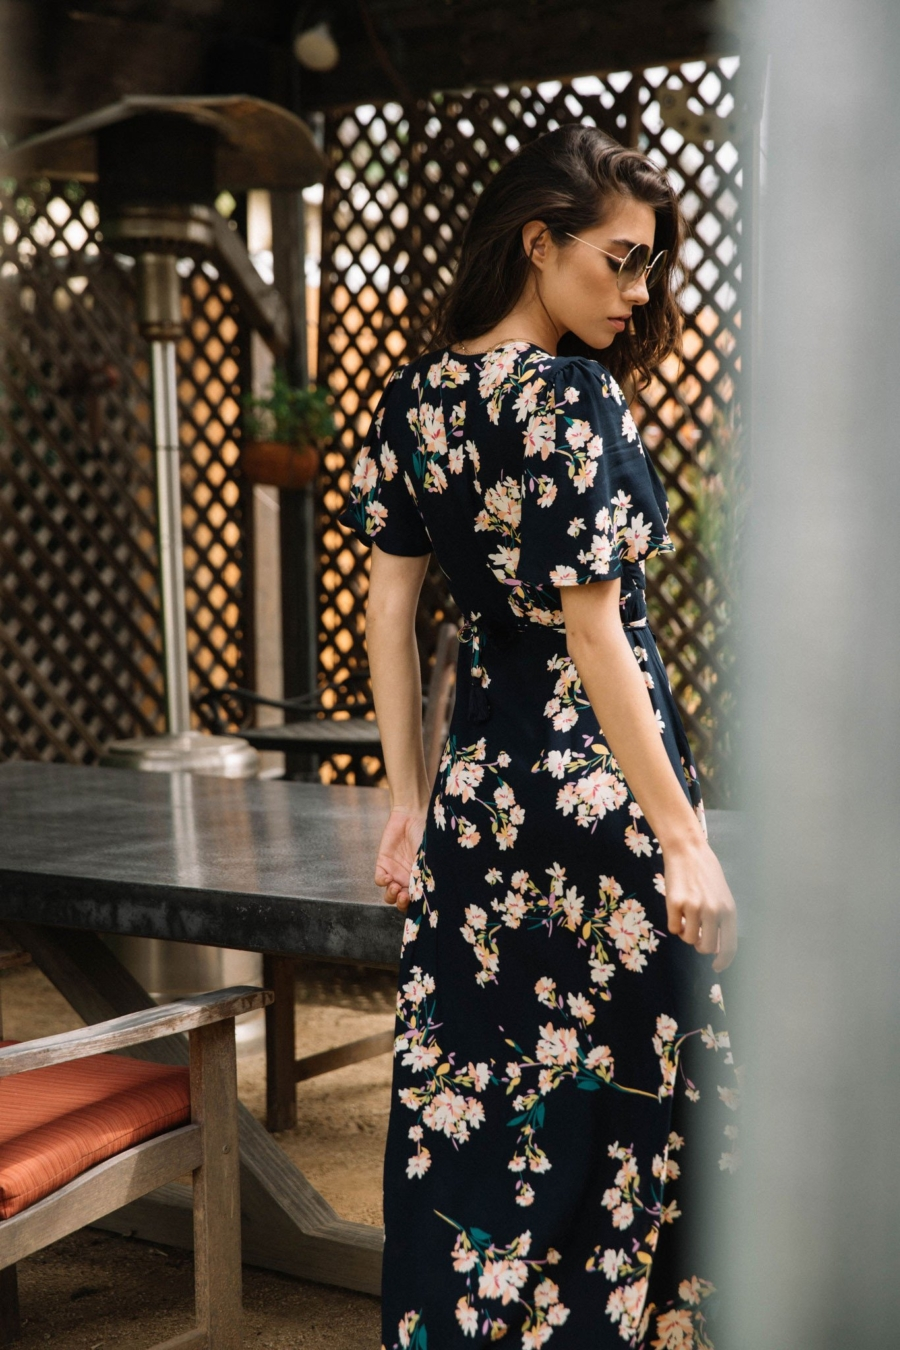 Floral Maxi Dress - 7 Types of Easter Sunday Dresses Under $100 // Notjessfashion.com